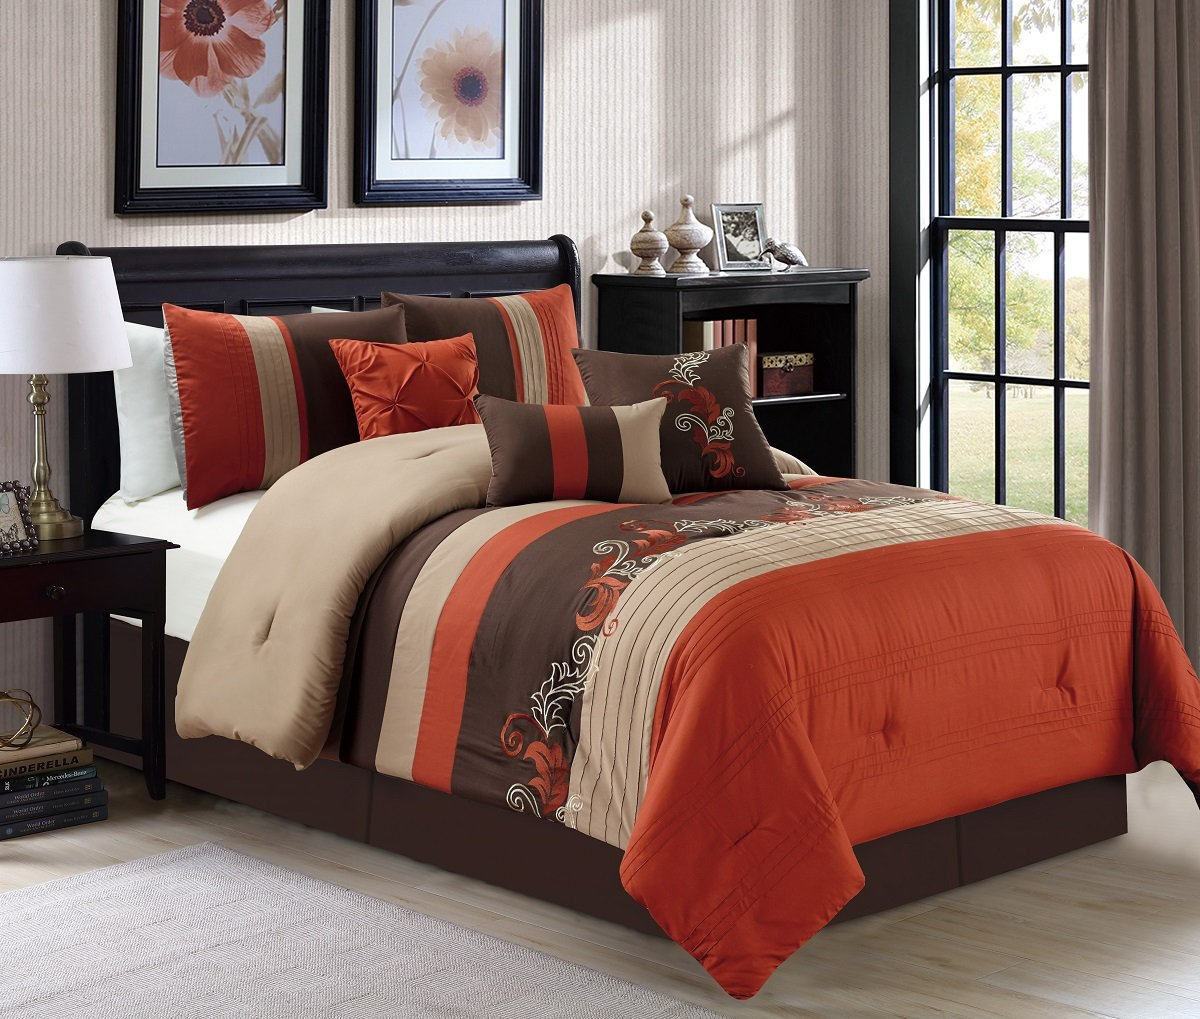 Embroidery Bedding Comforter Set Full, Rust Orange/Taupe/Brown